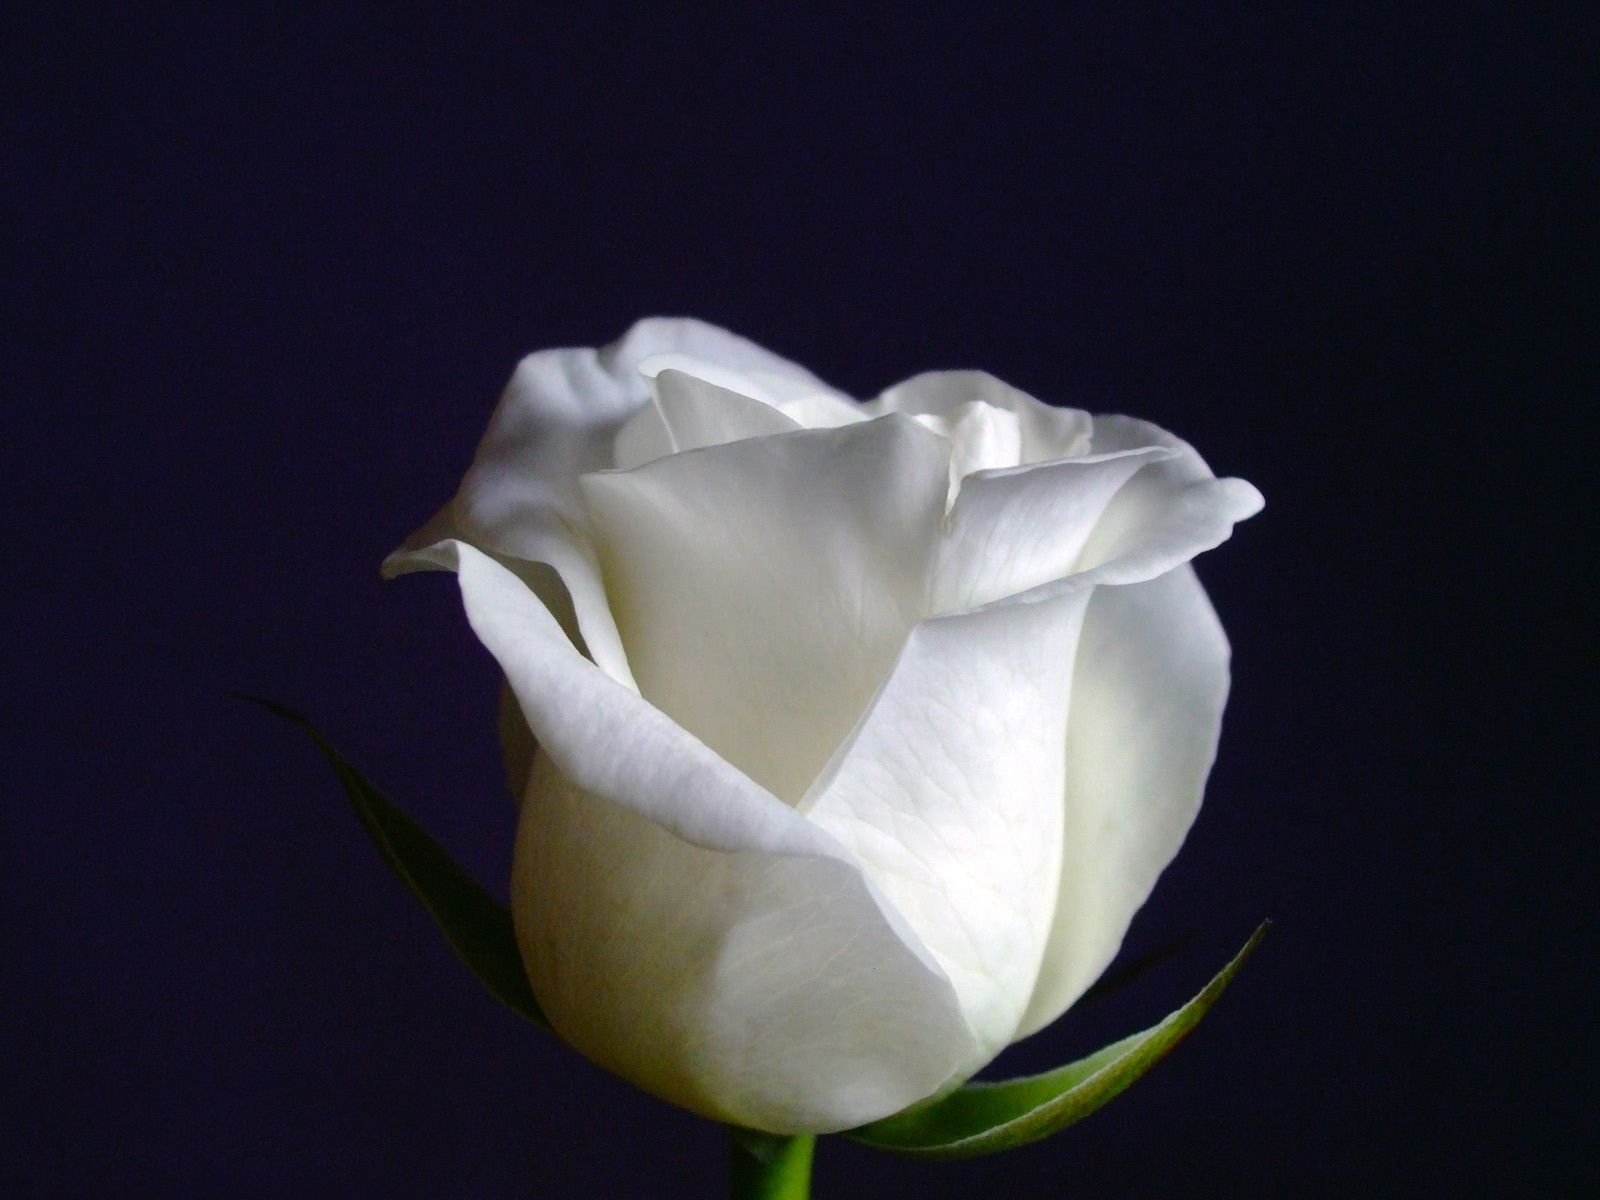 White Rose On Black Background Wallpaper And Photo Download By Photosof Org White Roses Rose Wallpaper Rose Flower Wallpaper High resolution white rose wallpaper hd